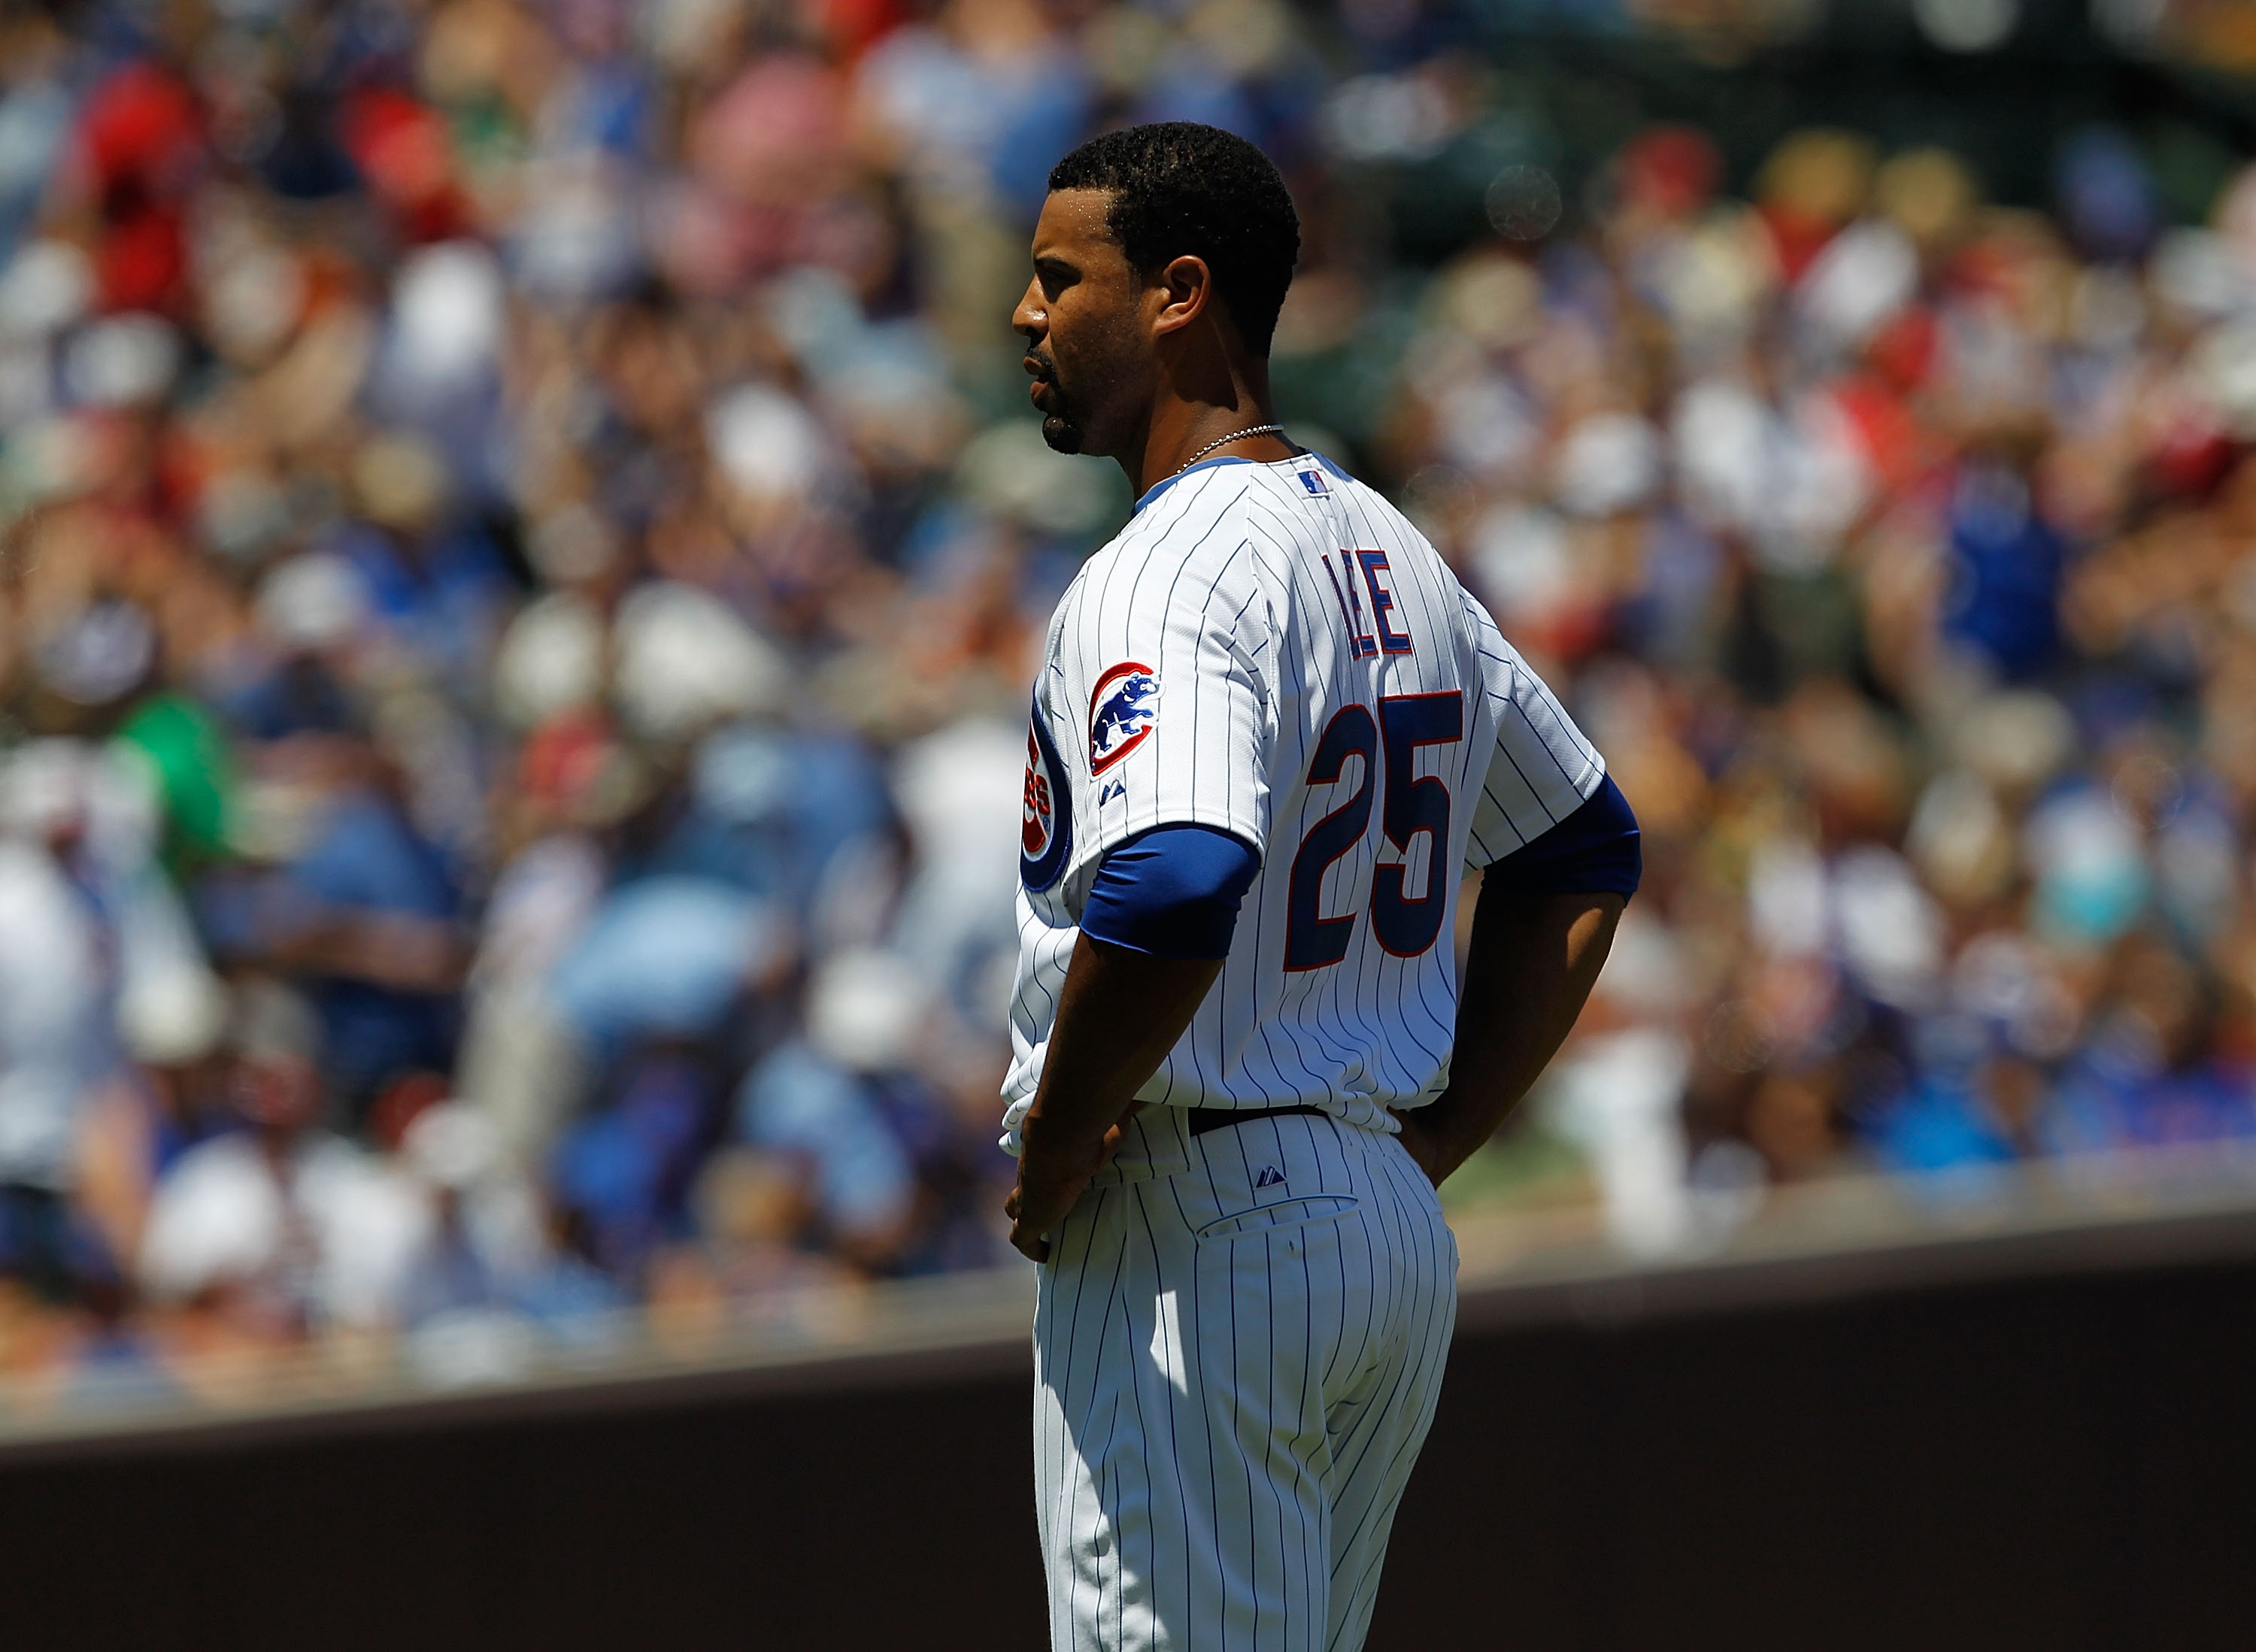 CHICAGO - JULY 03: Derrek Lee #25 of the Chicago Cubs stands and waits for a teammate to bring him his hat and glove after flying out to end an inning against the Cincinnati Reds at Wrigley Field on July 3, 2010 in Chicago, Illinois. The Cubs defeated the